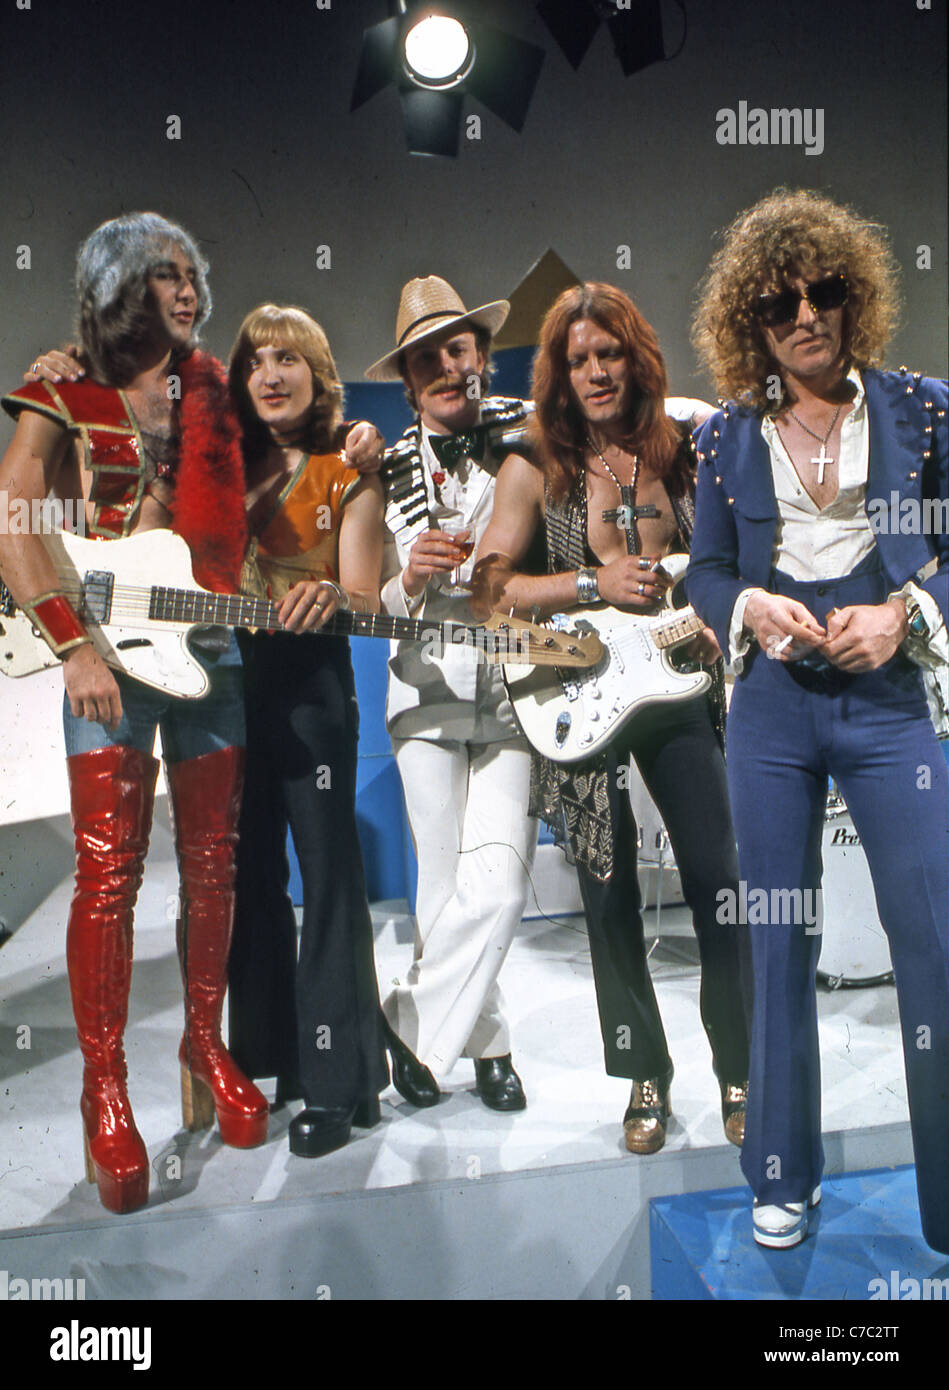 MOTT THE HOOPLE UK group in 1973. From left: Peter Overend Watts, Dale Griffin, Morgan Fisher, Ariel Bender, Ian - Stock Image